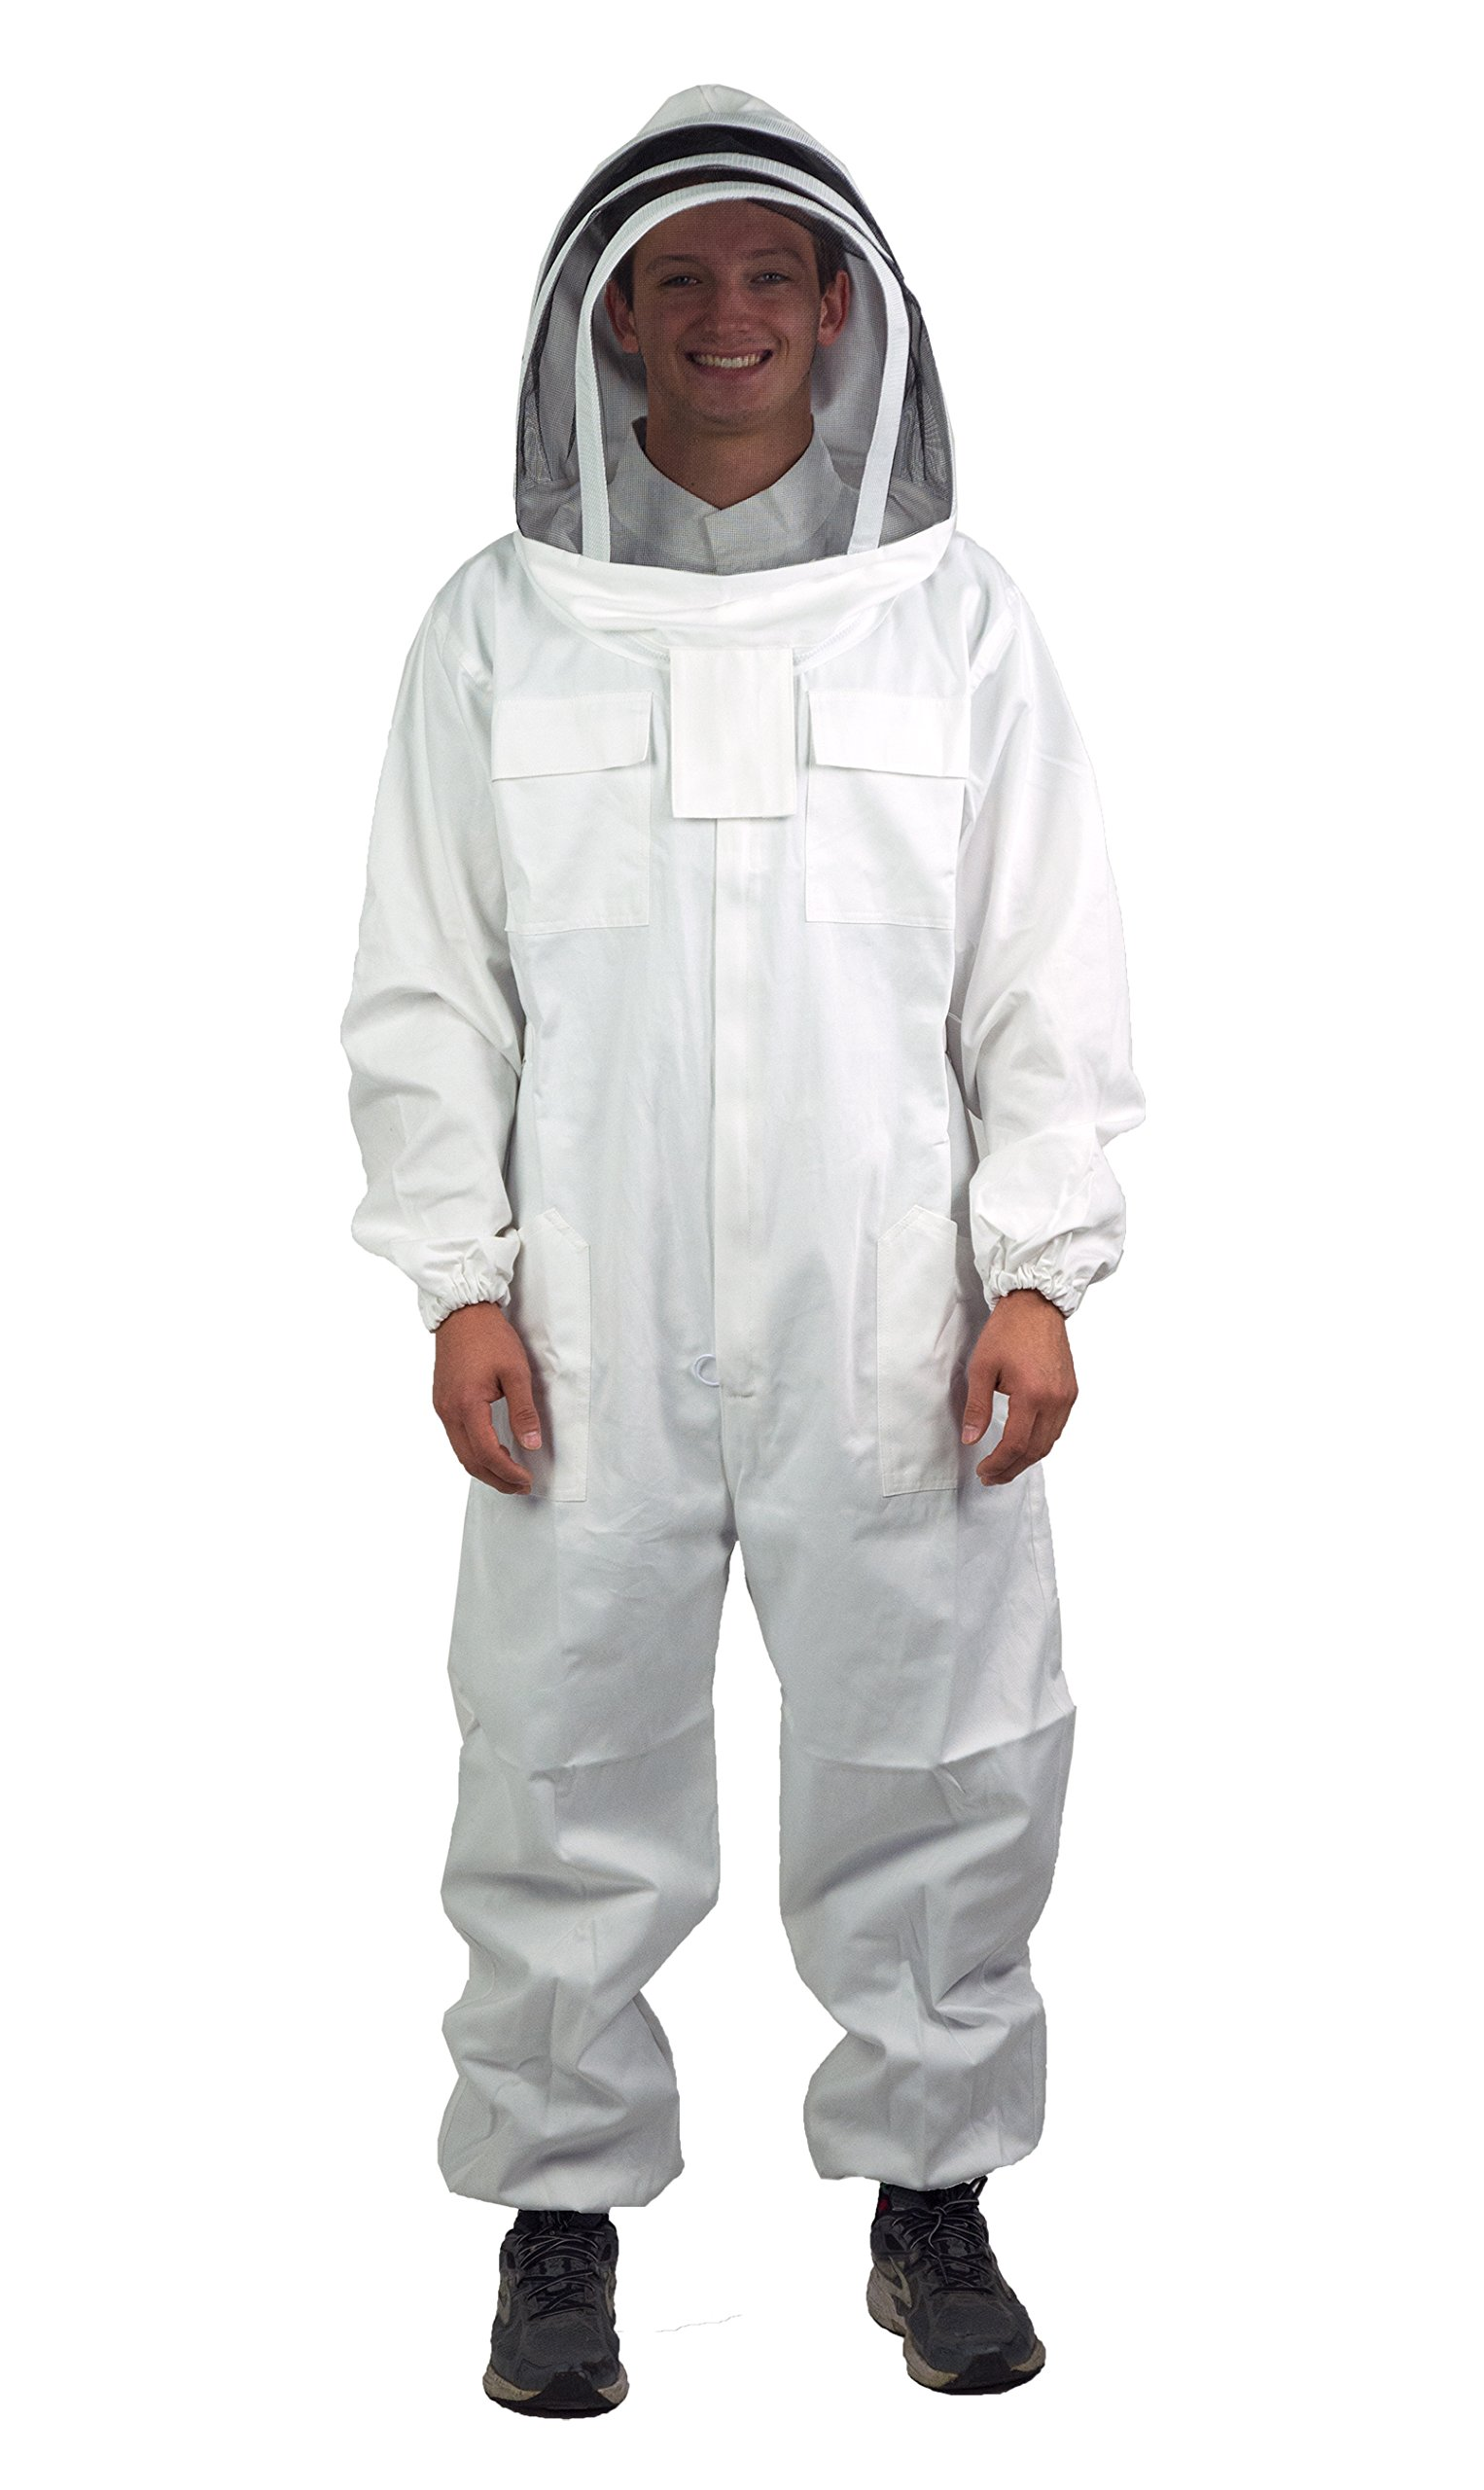 VIVO New Professional XL Cotton Full Body Beekeeping Bee Keeping Suit, with Veil Hood By (BEE-V106XL)